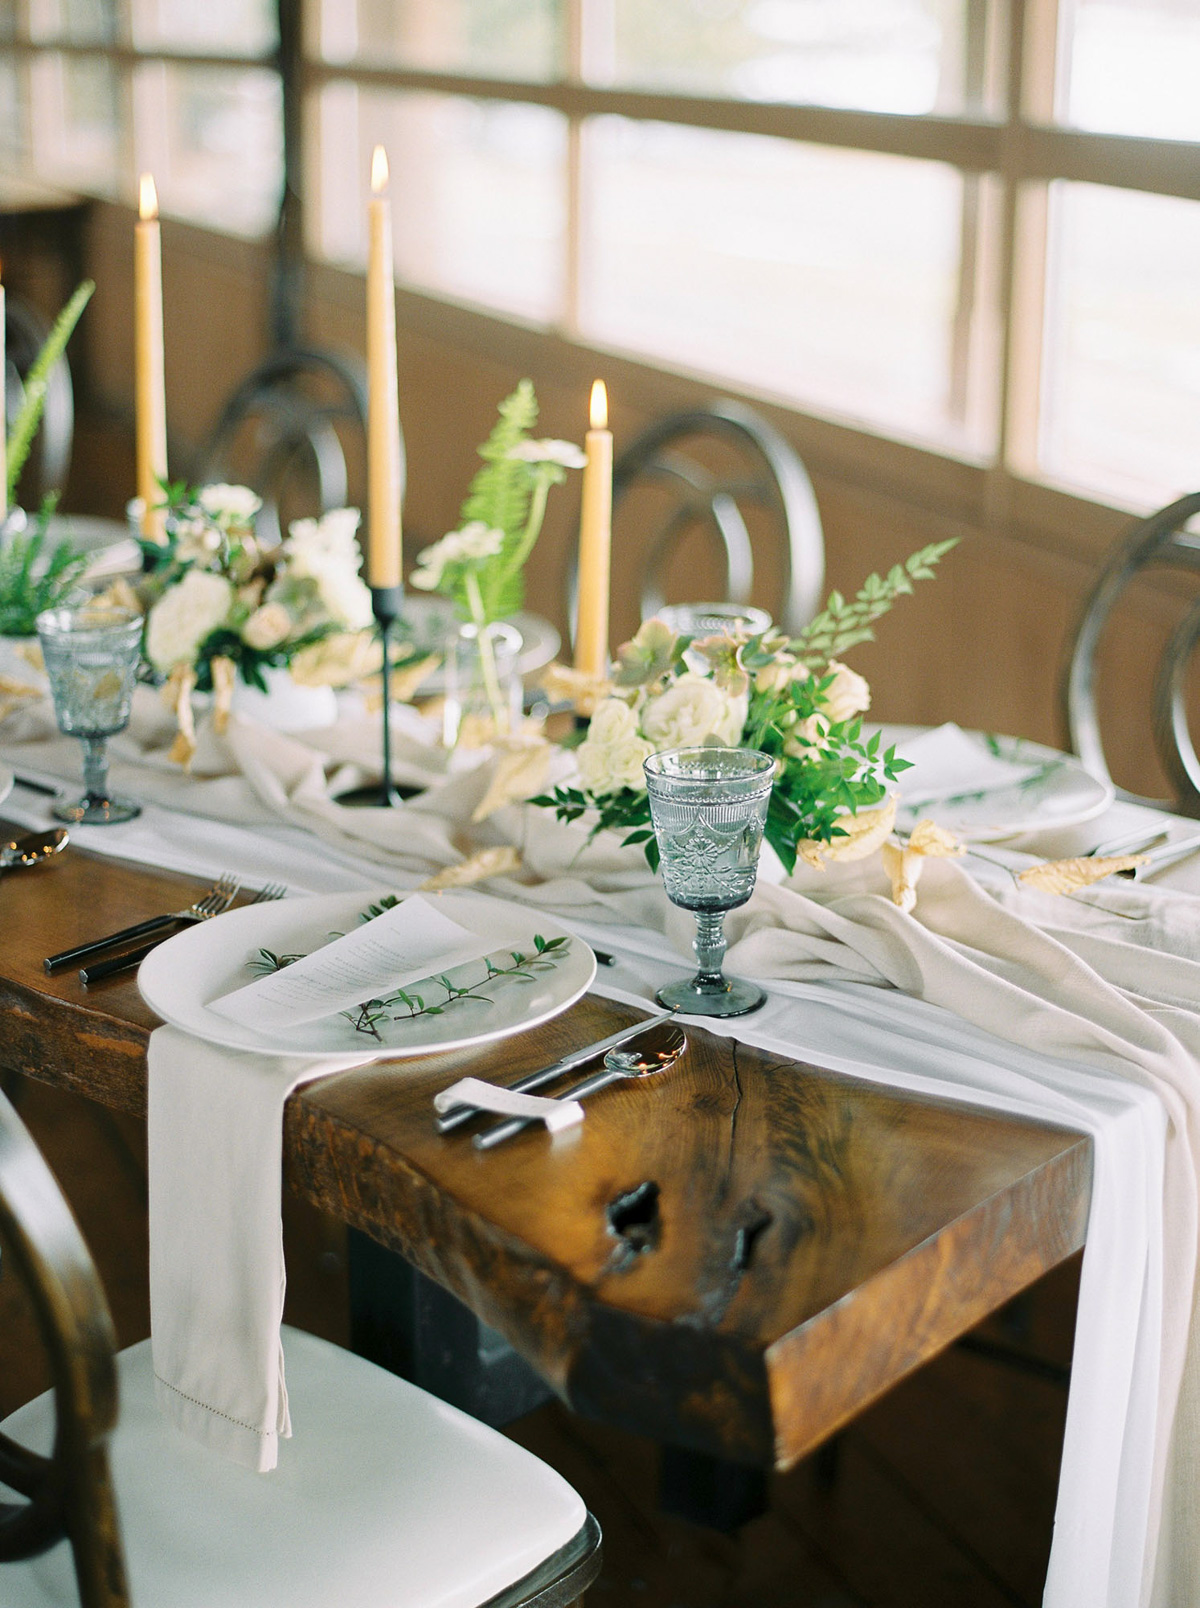 will-reid-photo-vineyard-bride-swish-list-kurtz-orchards-market-niagara-on-the-lake-wedding-editorial-8.jpg